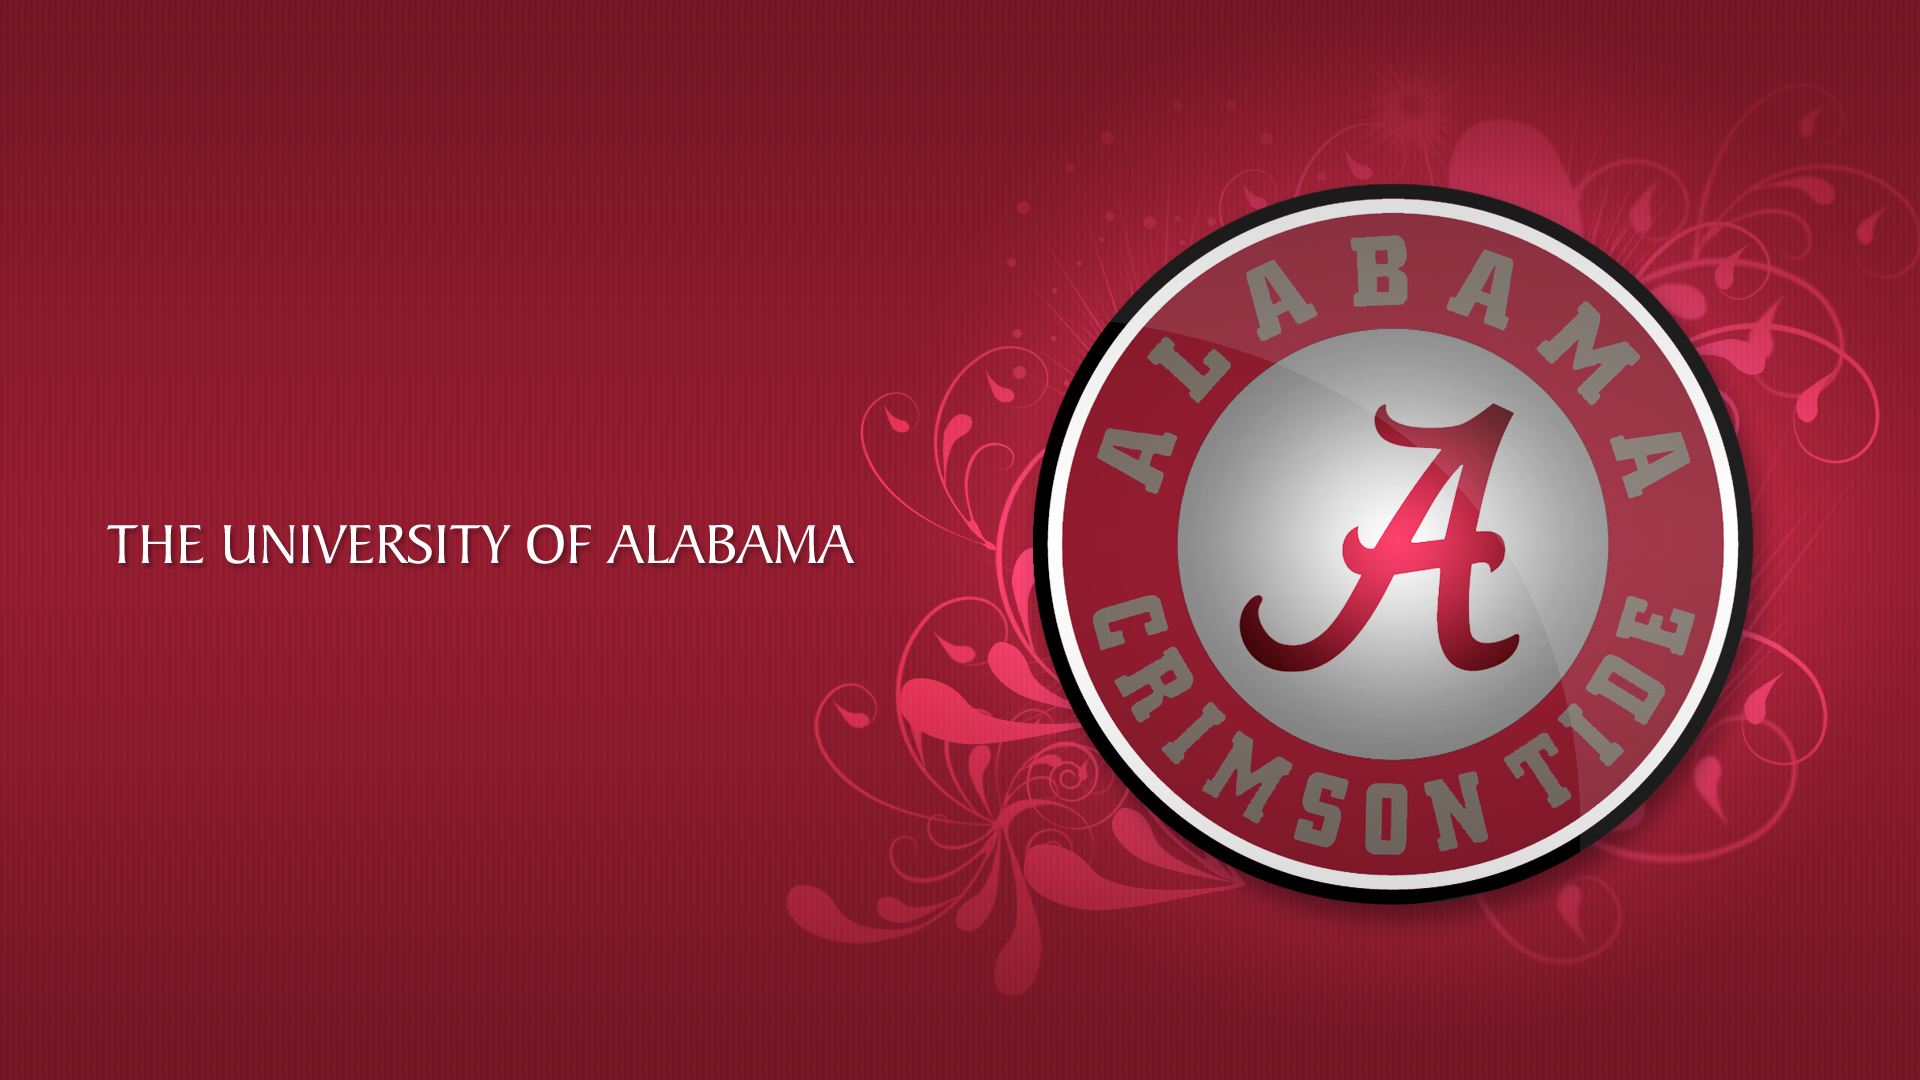 The University of Alabama USA   Wallpaper 34946 1920x1080